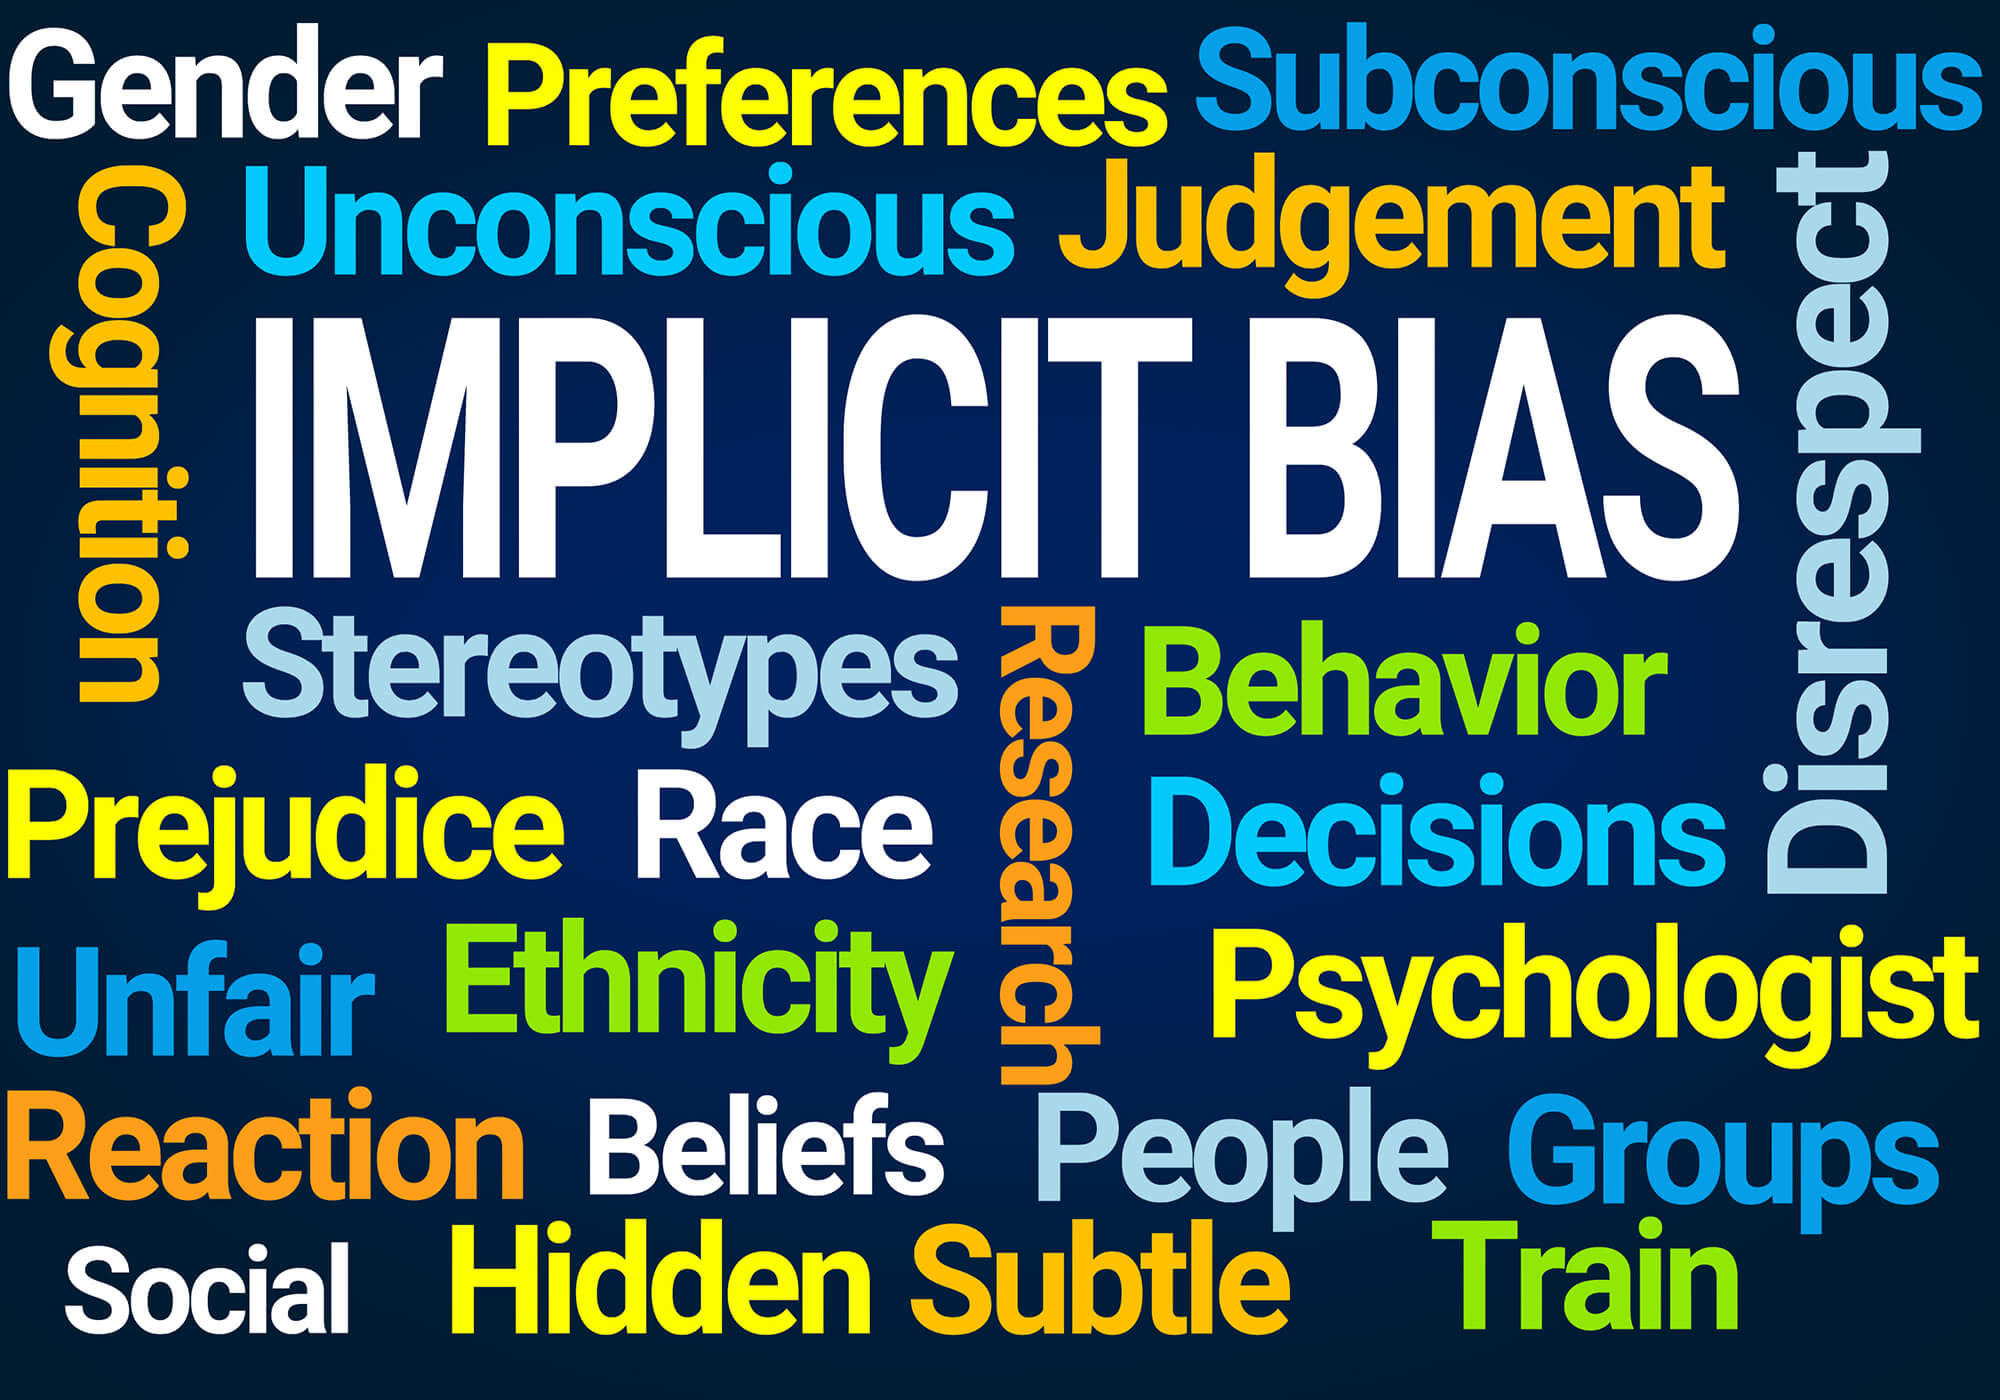 implicit bias words with other words on black background